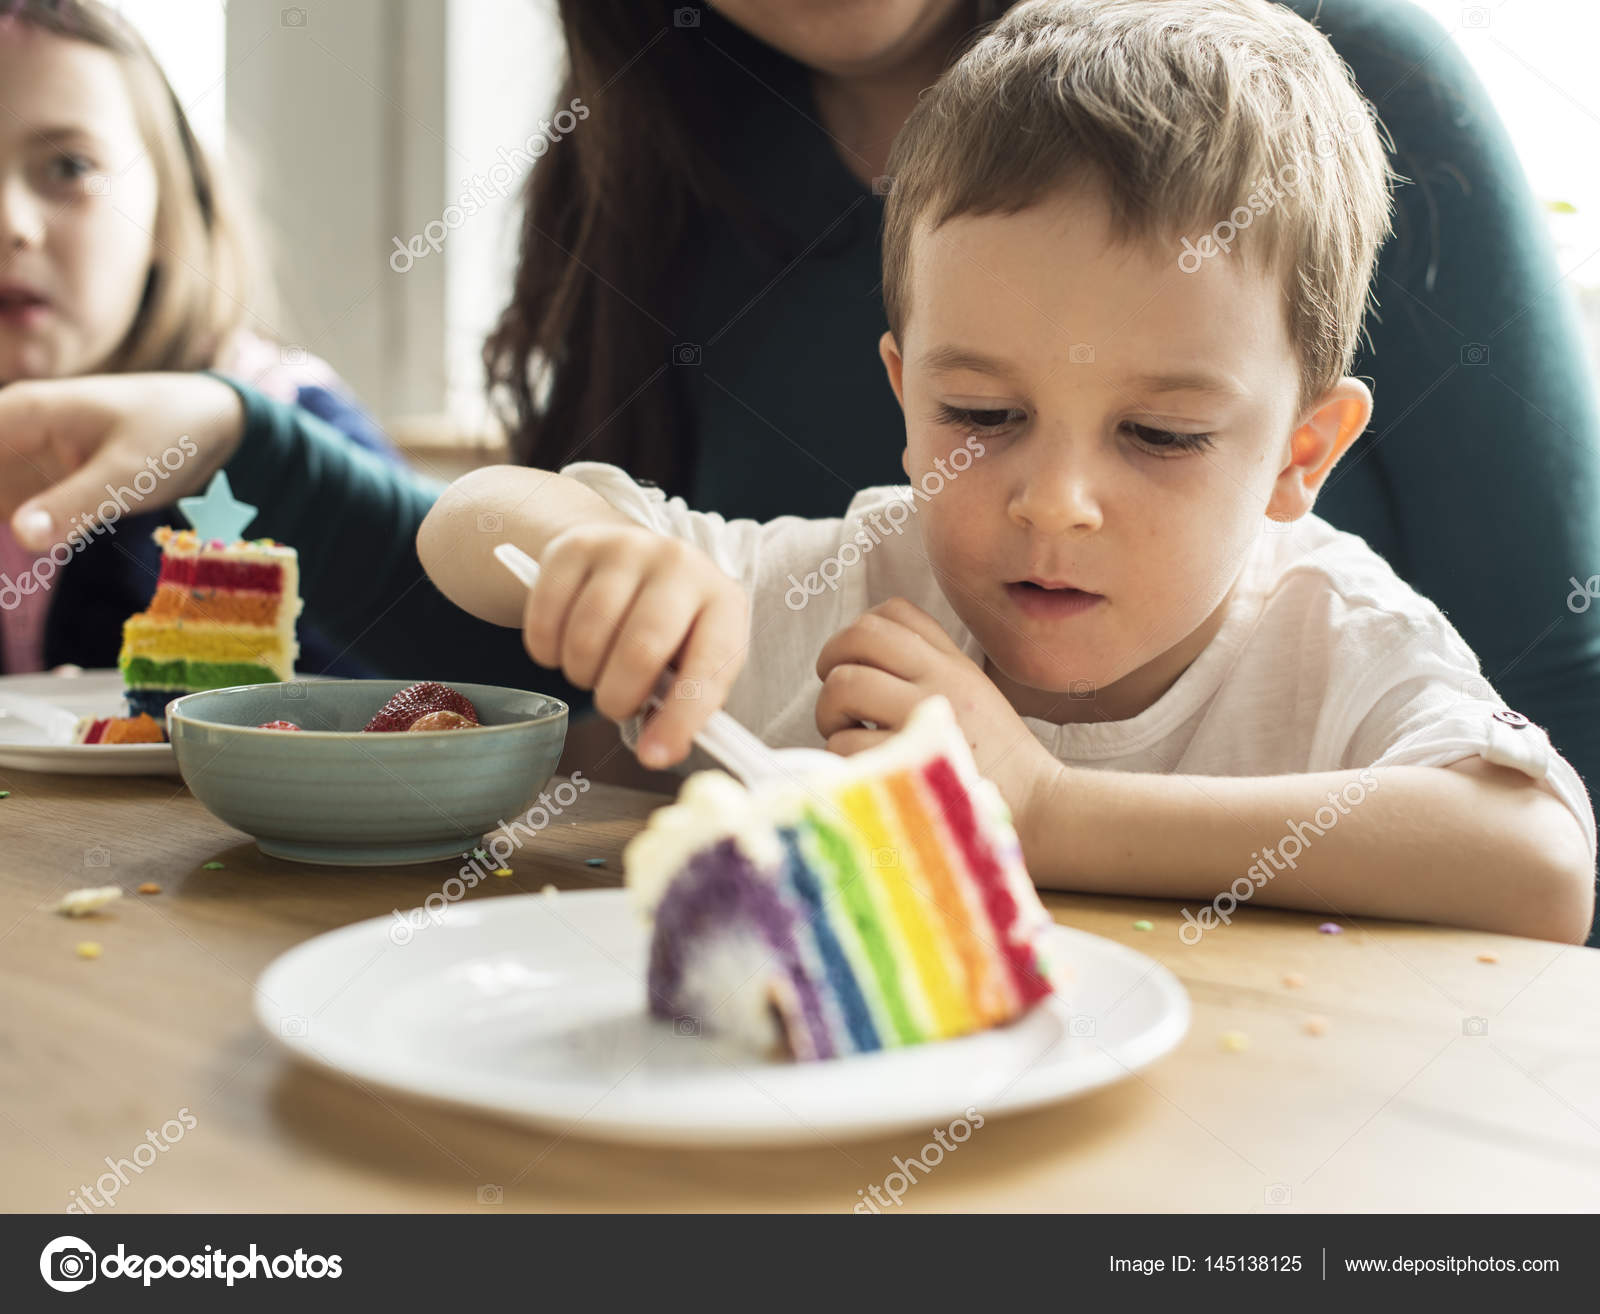 Excellent Little Boy Eating Birthday Cake Stock Photo C Rawpixel 145138125 Funny Birthday Cards Online Inifofree Goldxyz